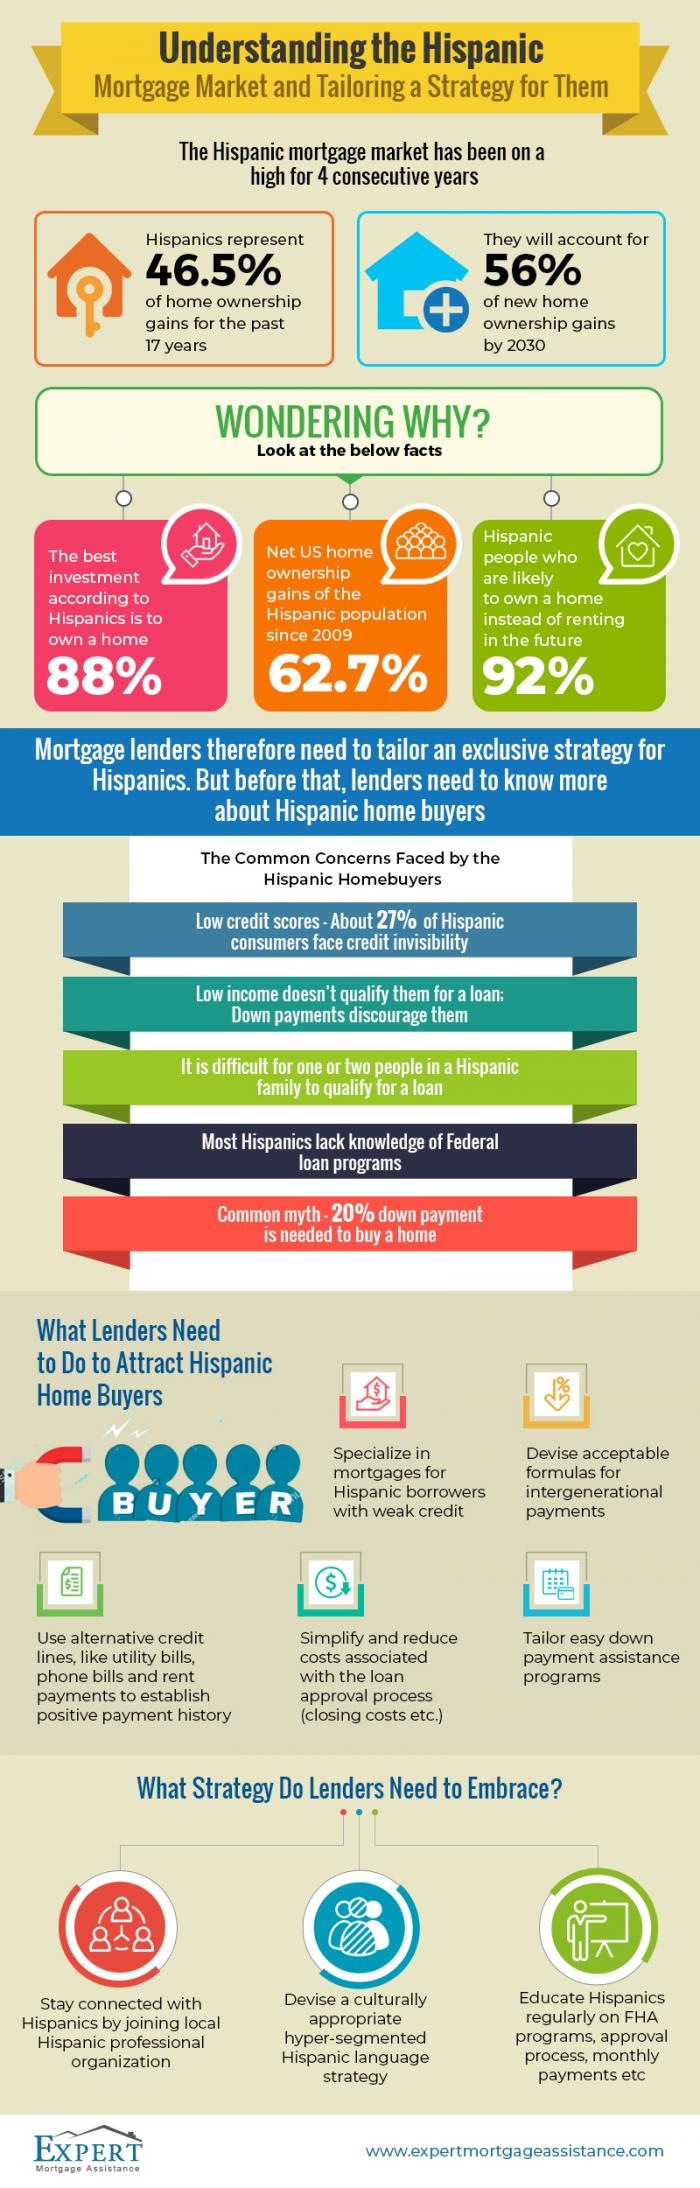 why focus on the Hispanic mortgage market